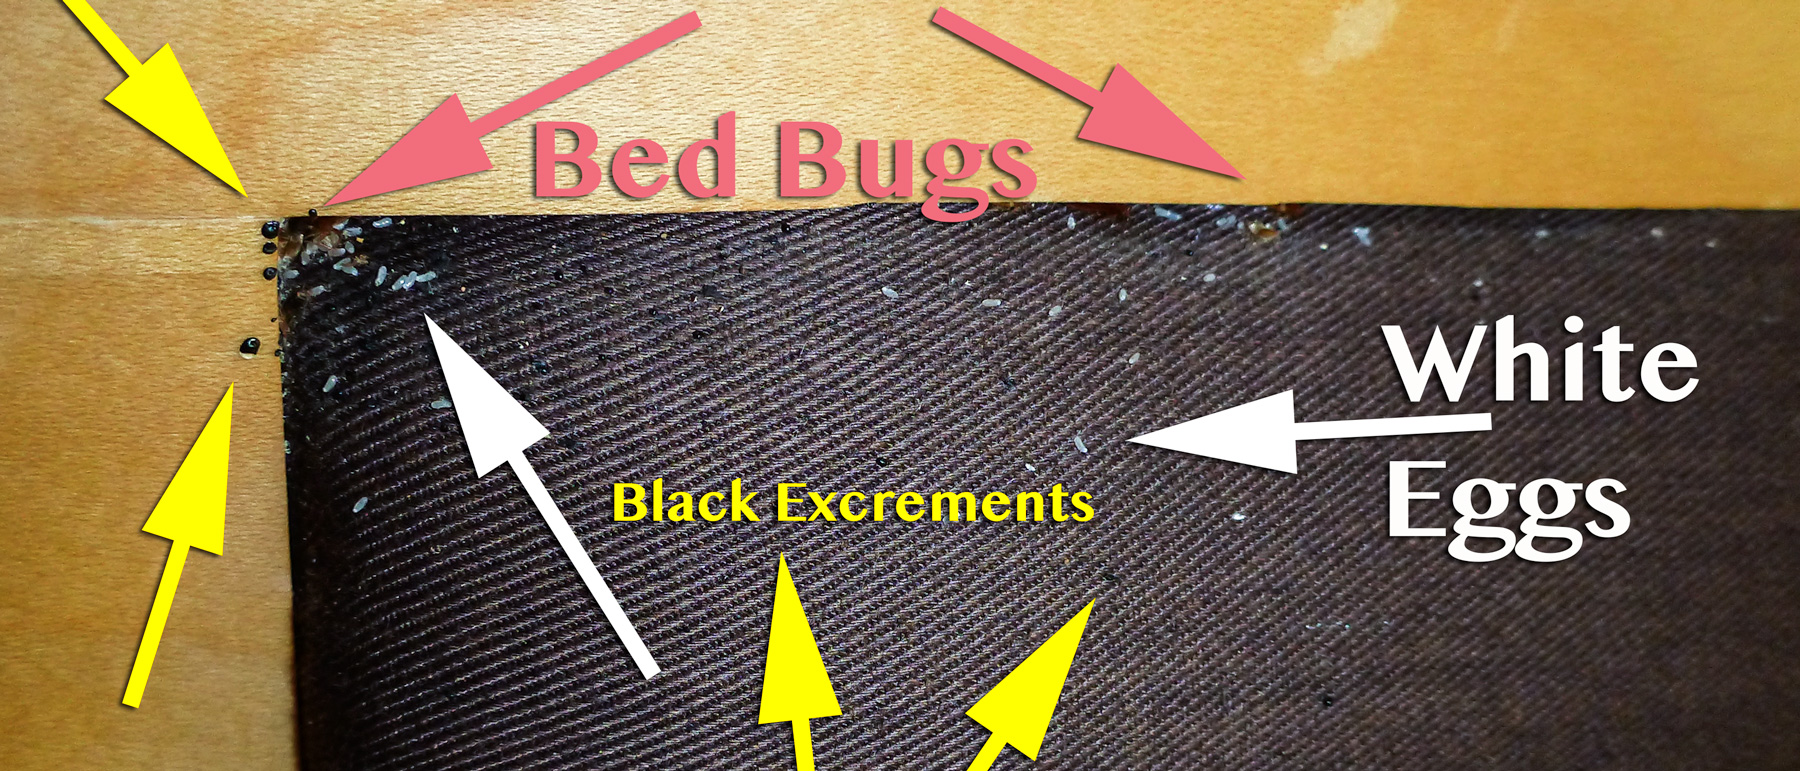 Bed Bug Nest and Excrements